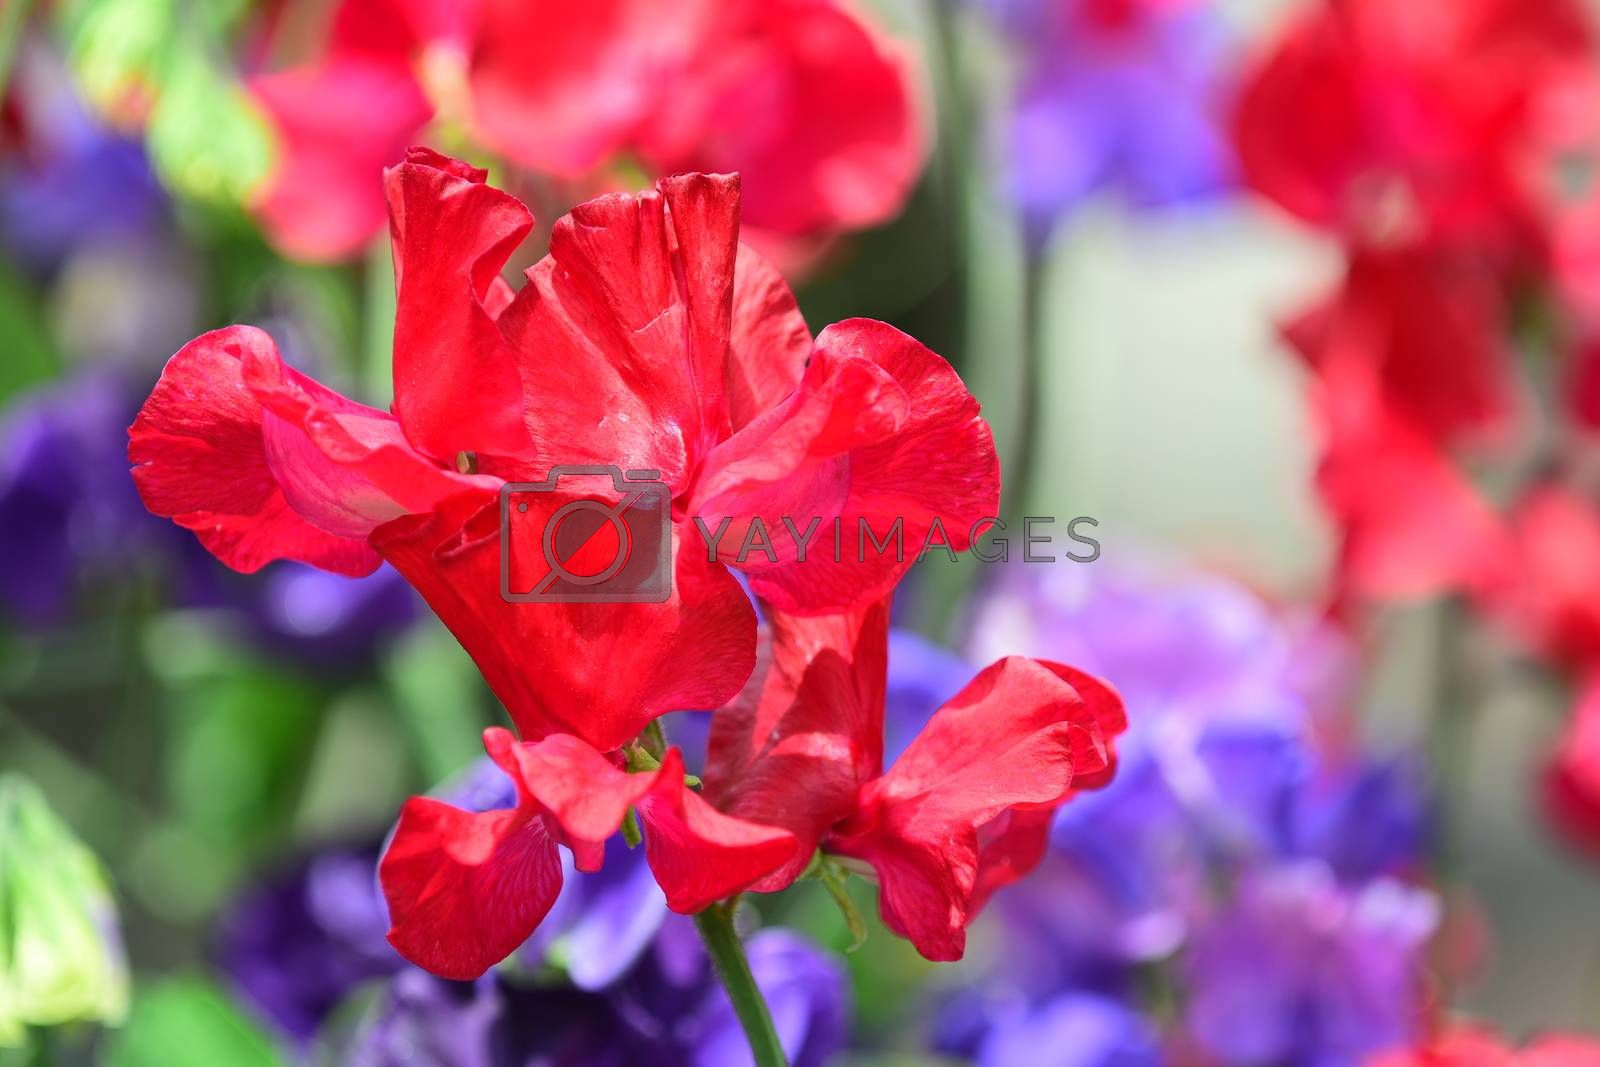 Sweet pea is an annual climbing plant, grown for their flower colour (usually in pastel shades of blue, pink, purple and white, including bi-colours), and for their intense unique fragrance.